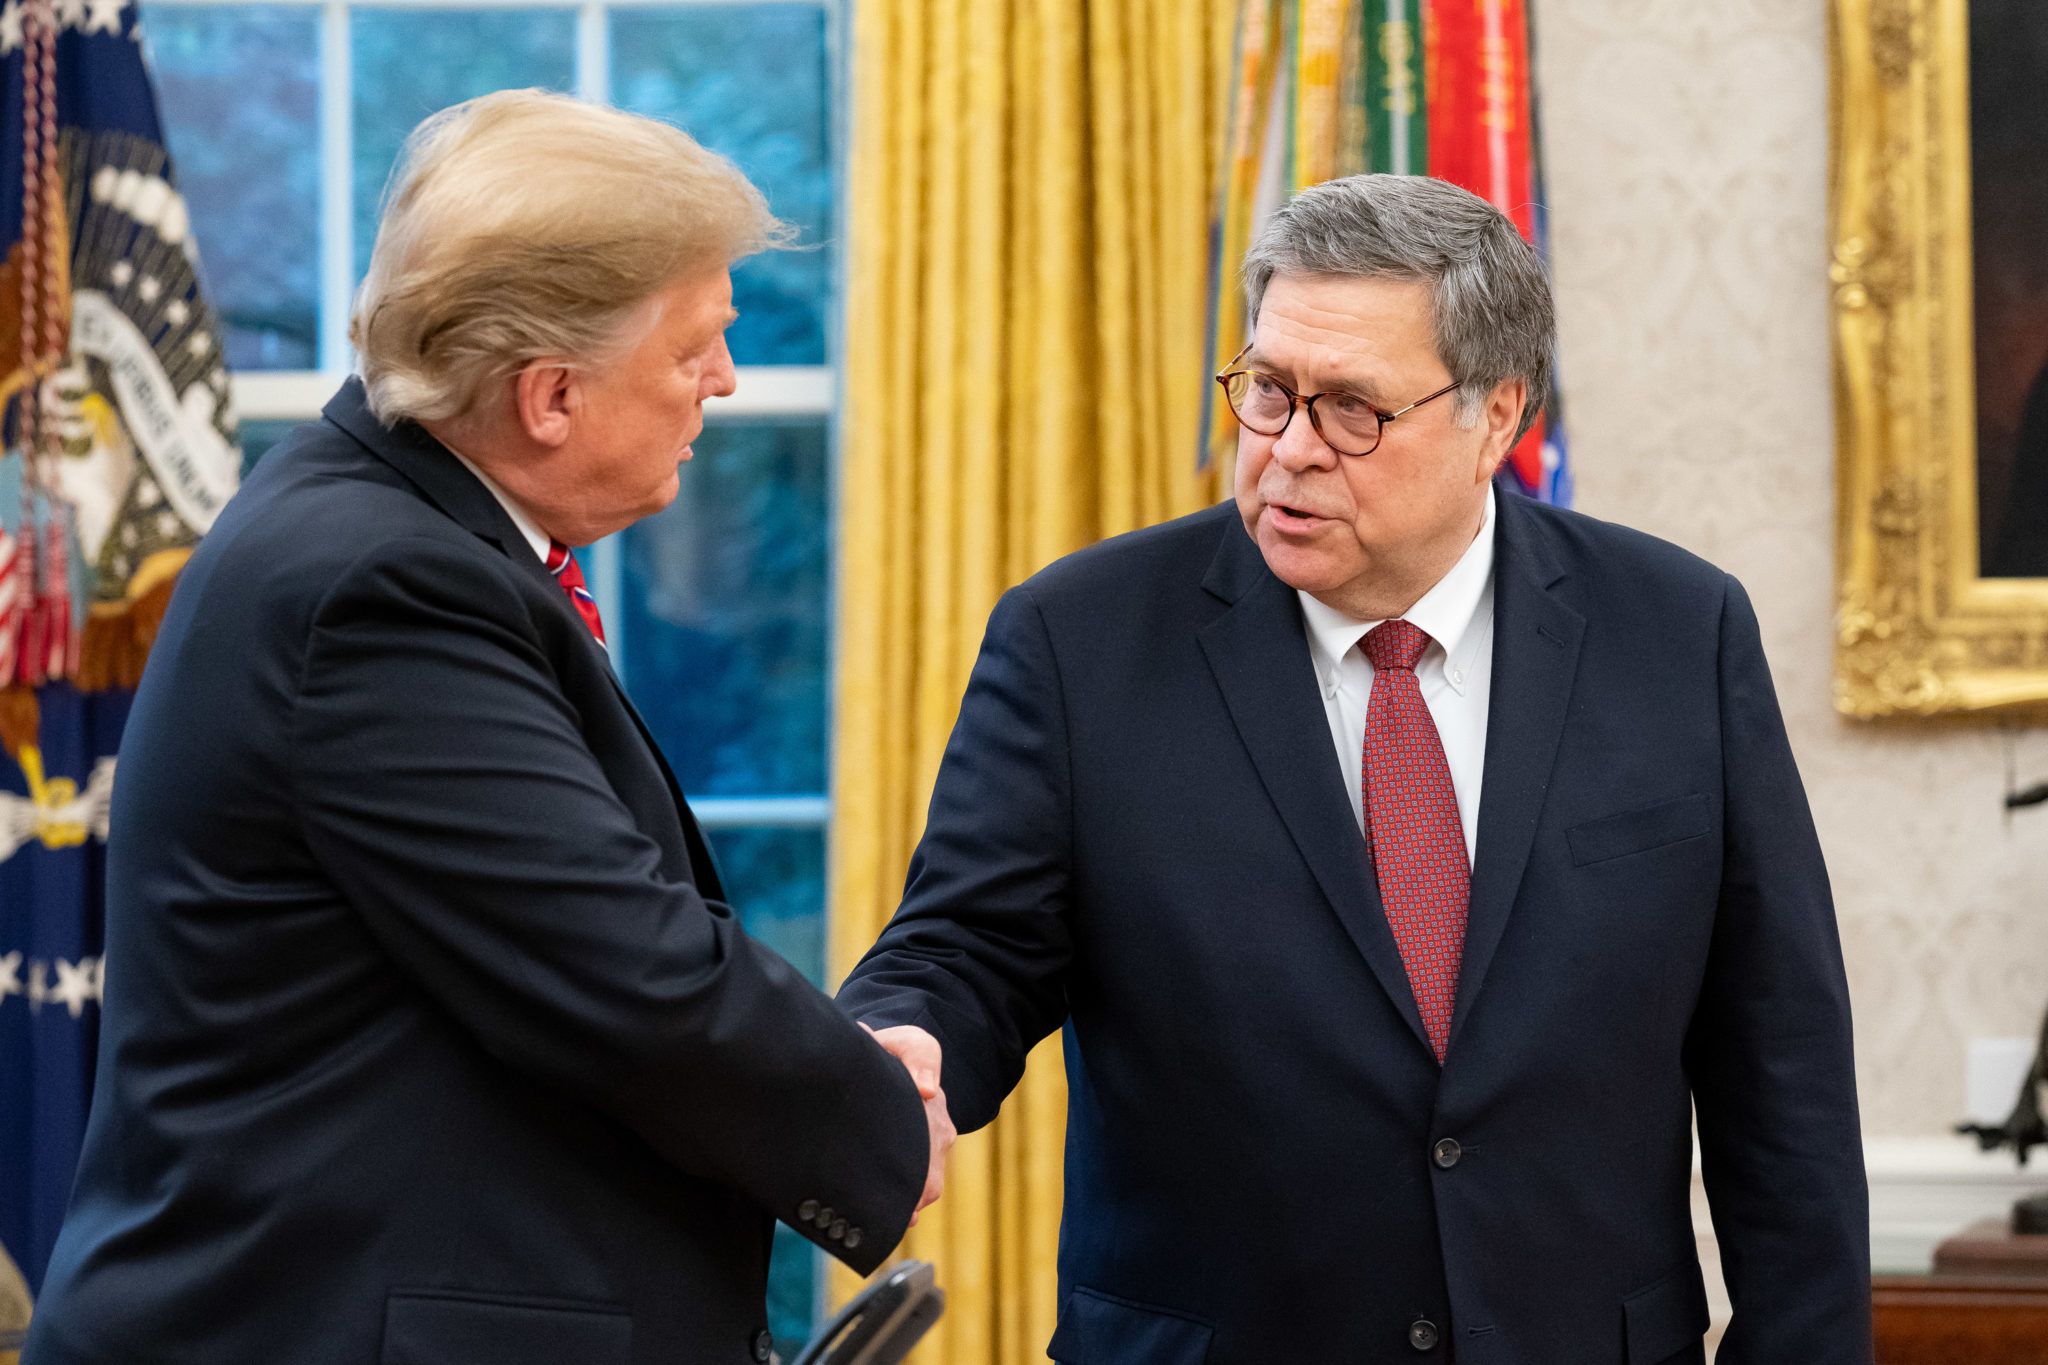 Donald_Trump_and_William_Barr-WhiteHouse.jpg